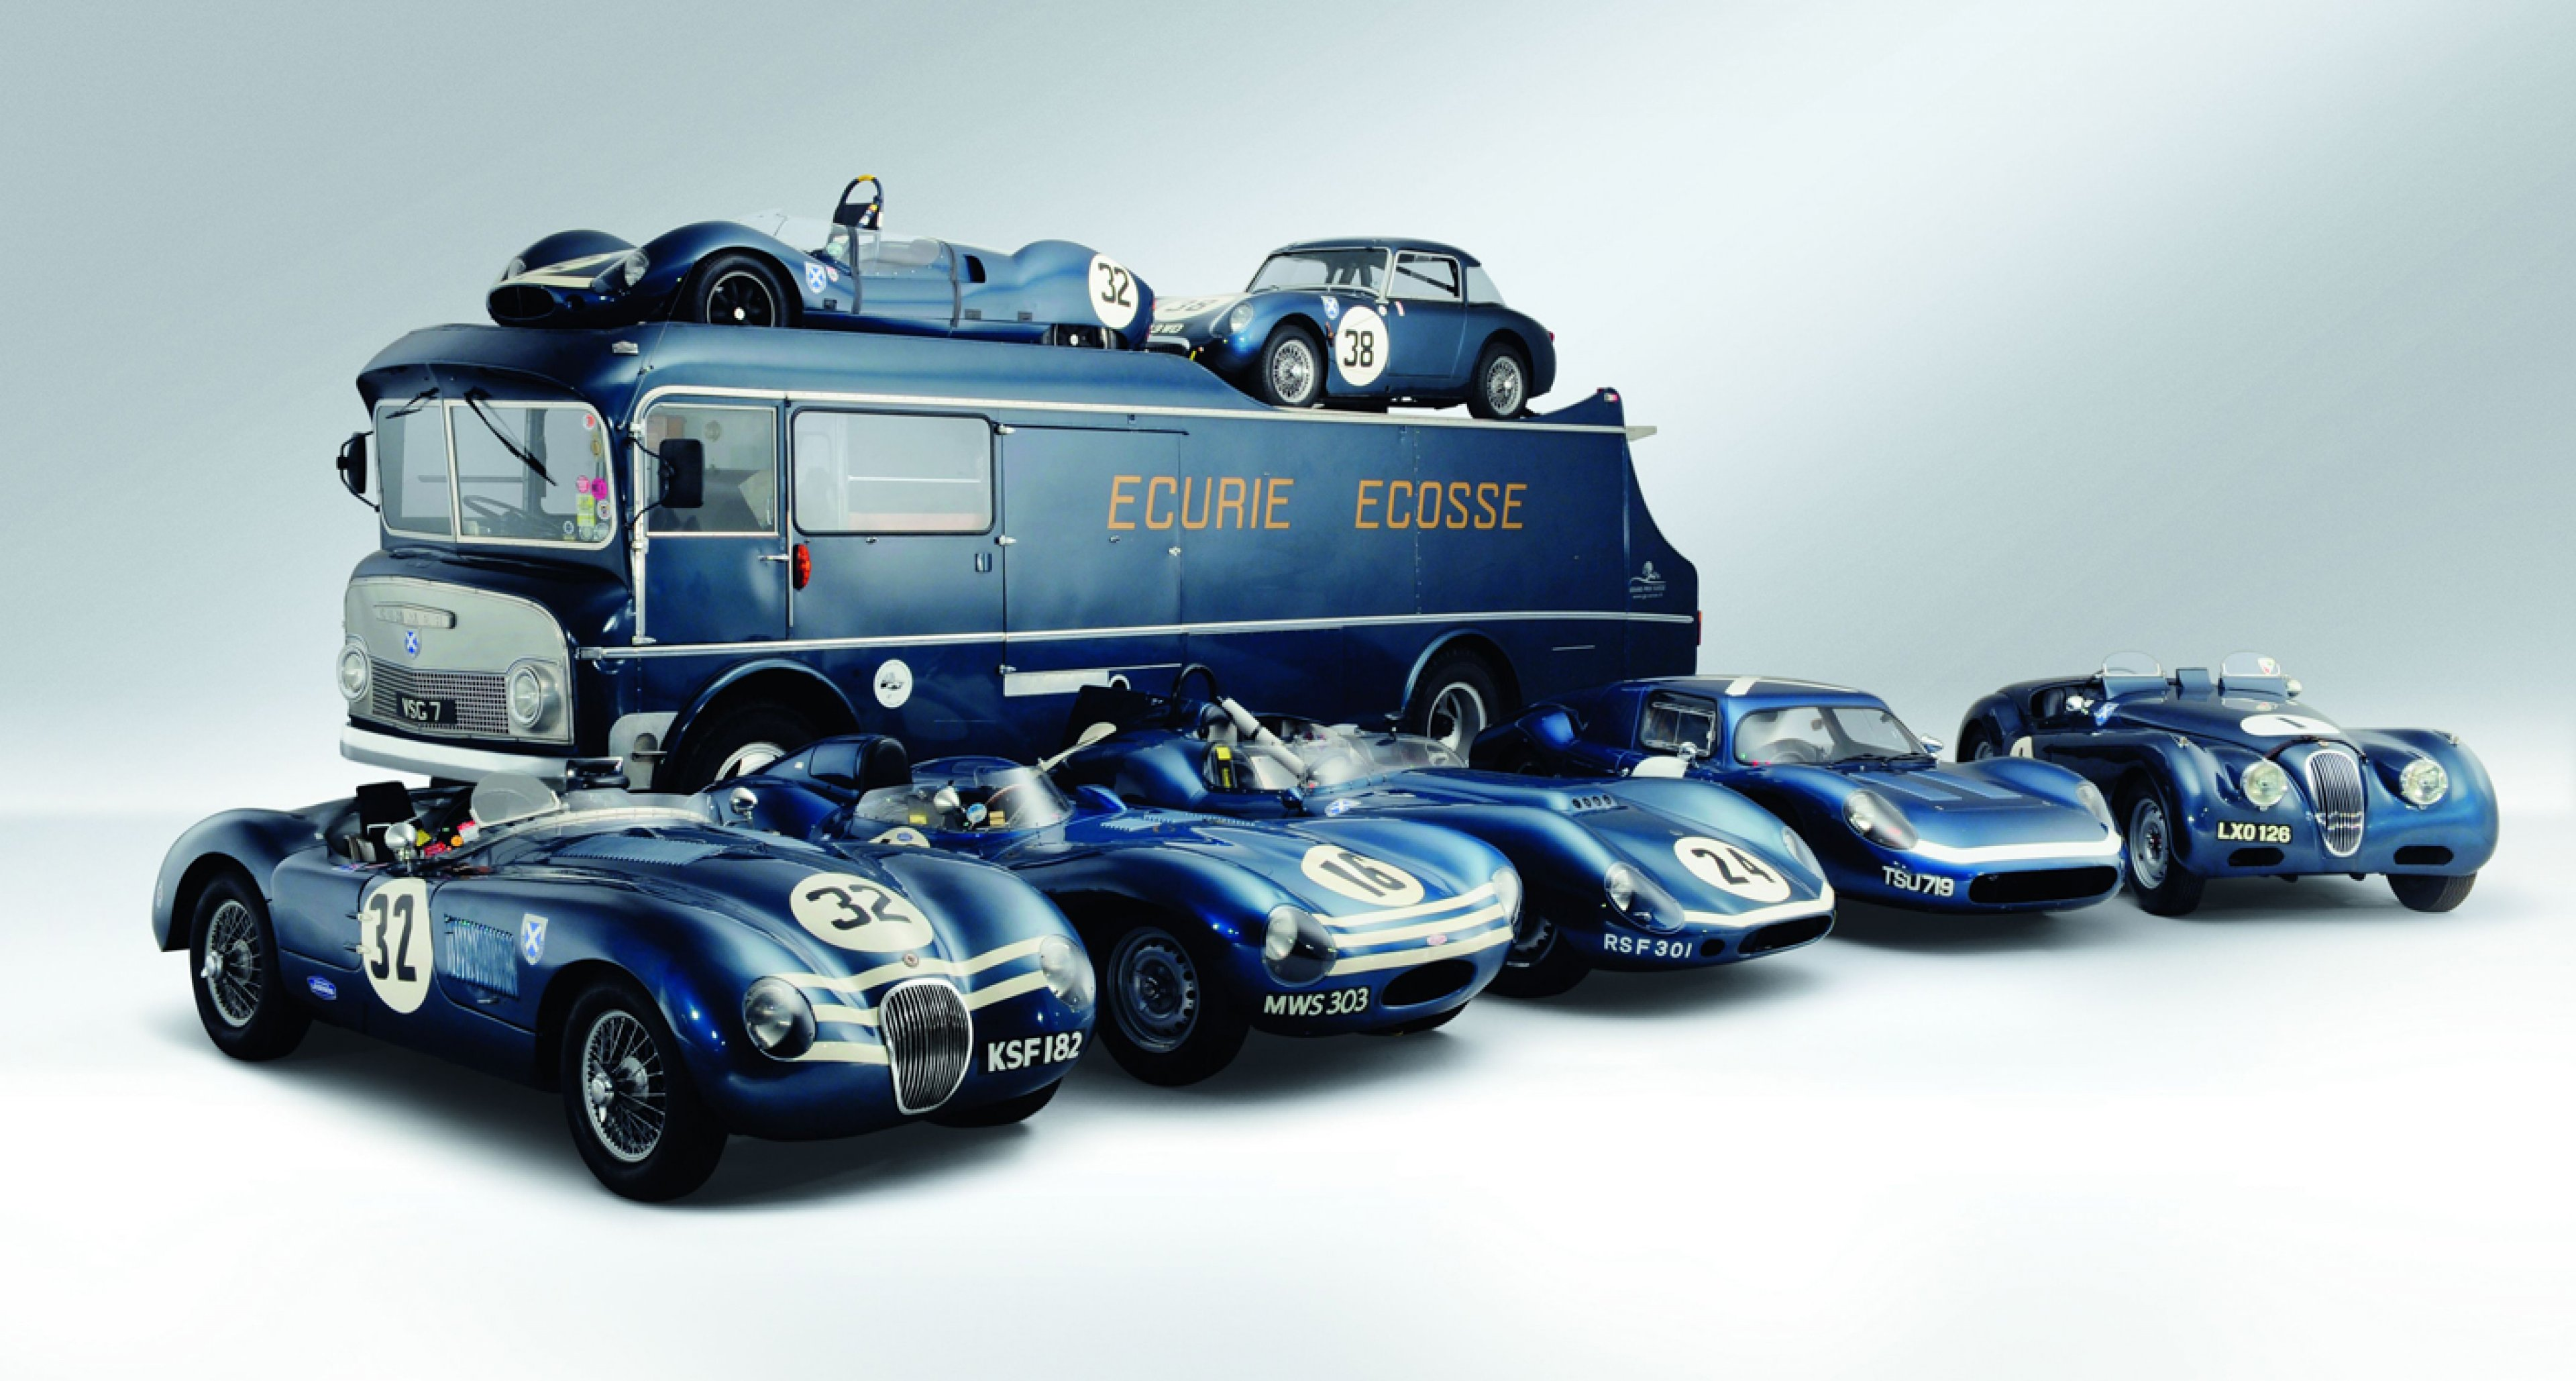 Ecurie Ecosse's Commer with friends